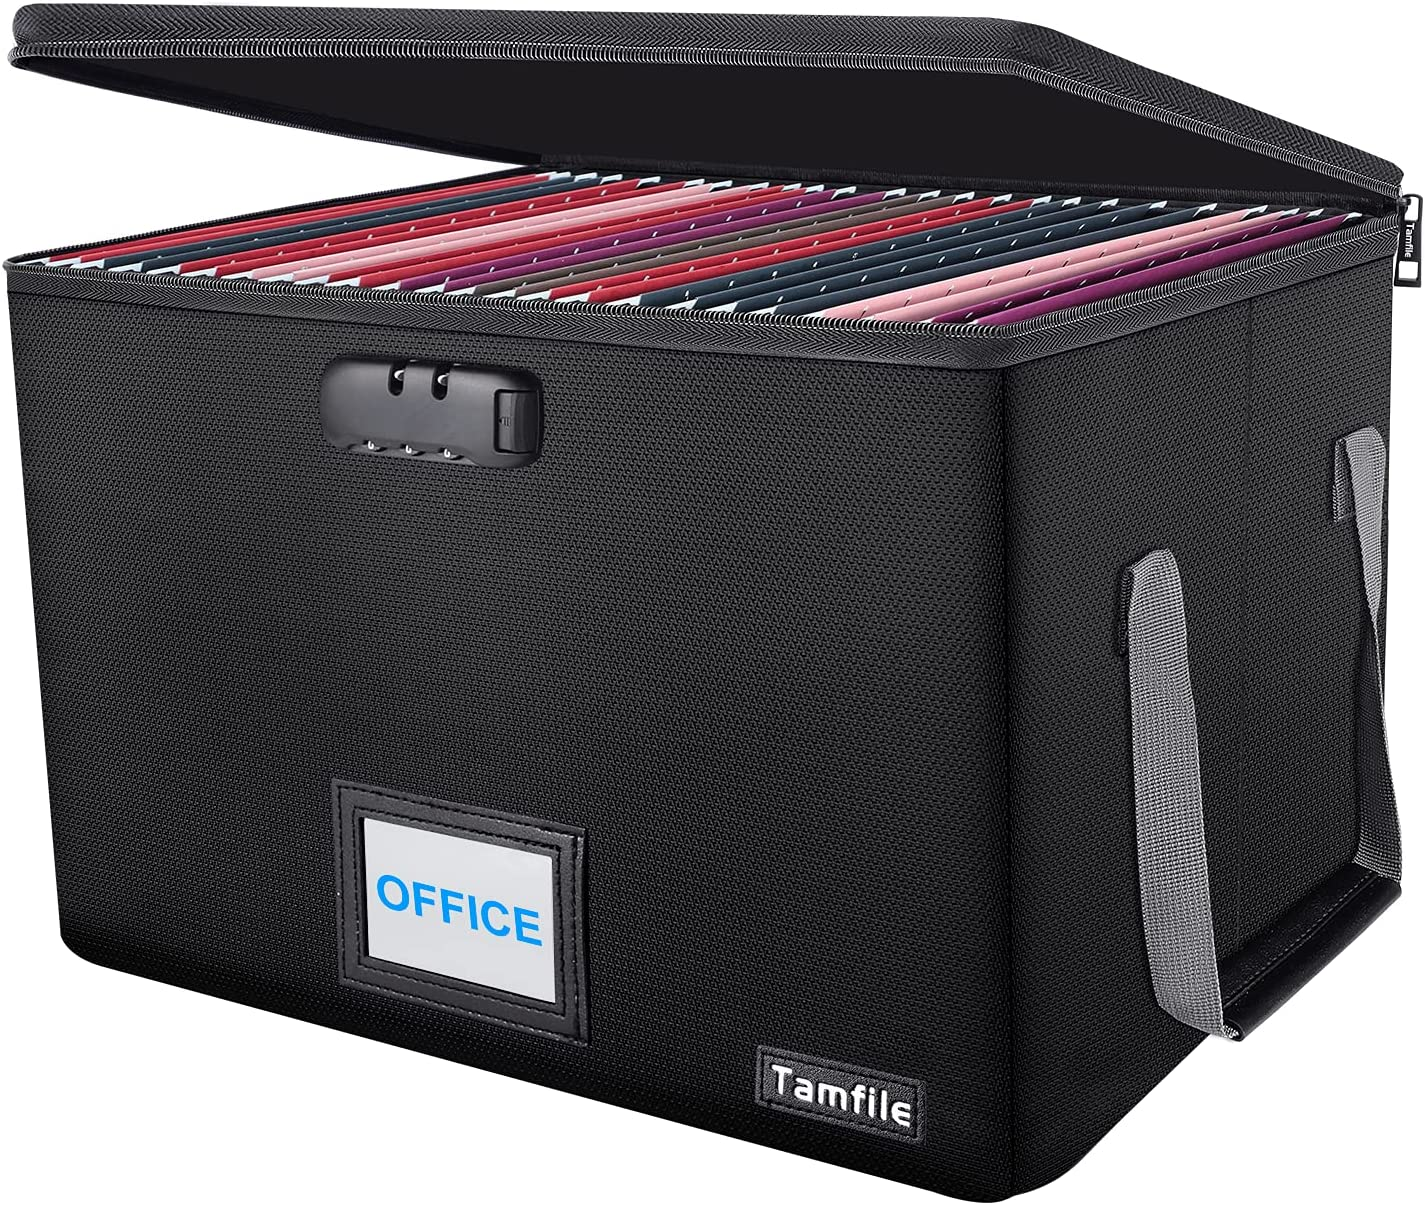 File Box, File Storage box, Tamfile Fireproof File Folder Boxes (1832℉) for Hanging Letter/Legal Filing, Document Organizer with Zipper Lock, Collapsible Office Document Storage Bin with Handle, Black